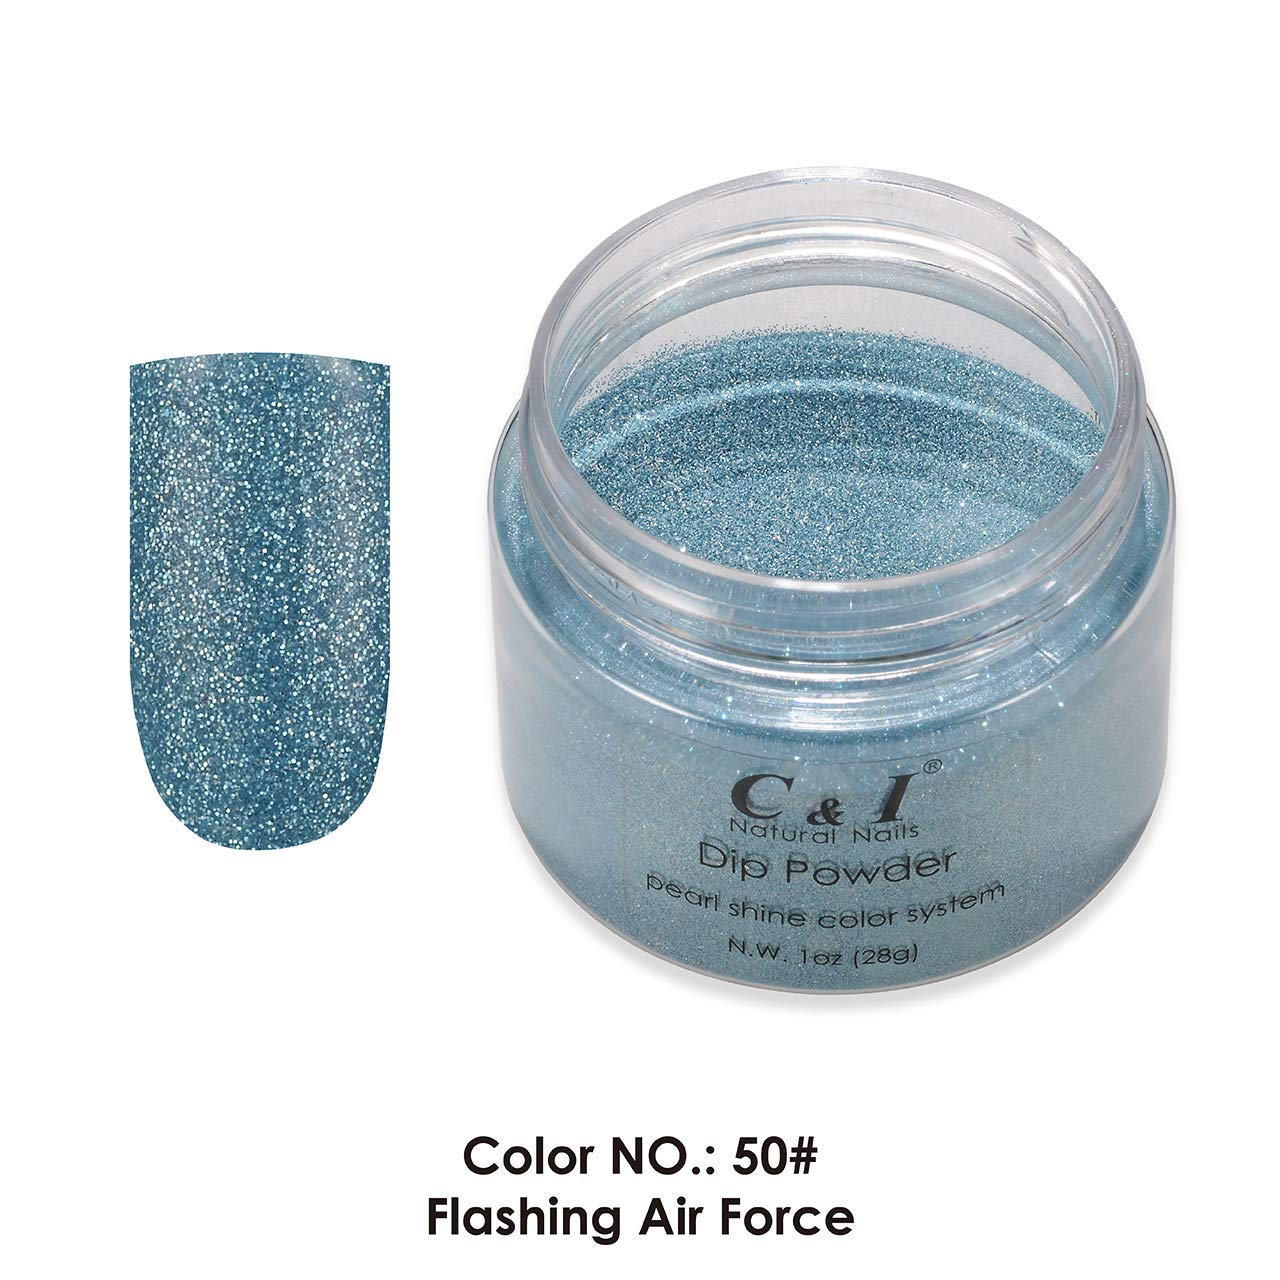 C & I Dip Powder Color No.050 Flashing Air Force Pearl Shine Color System